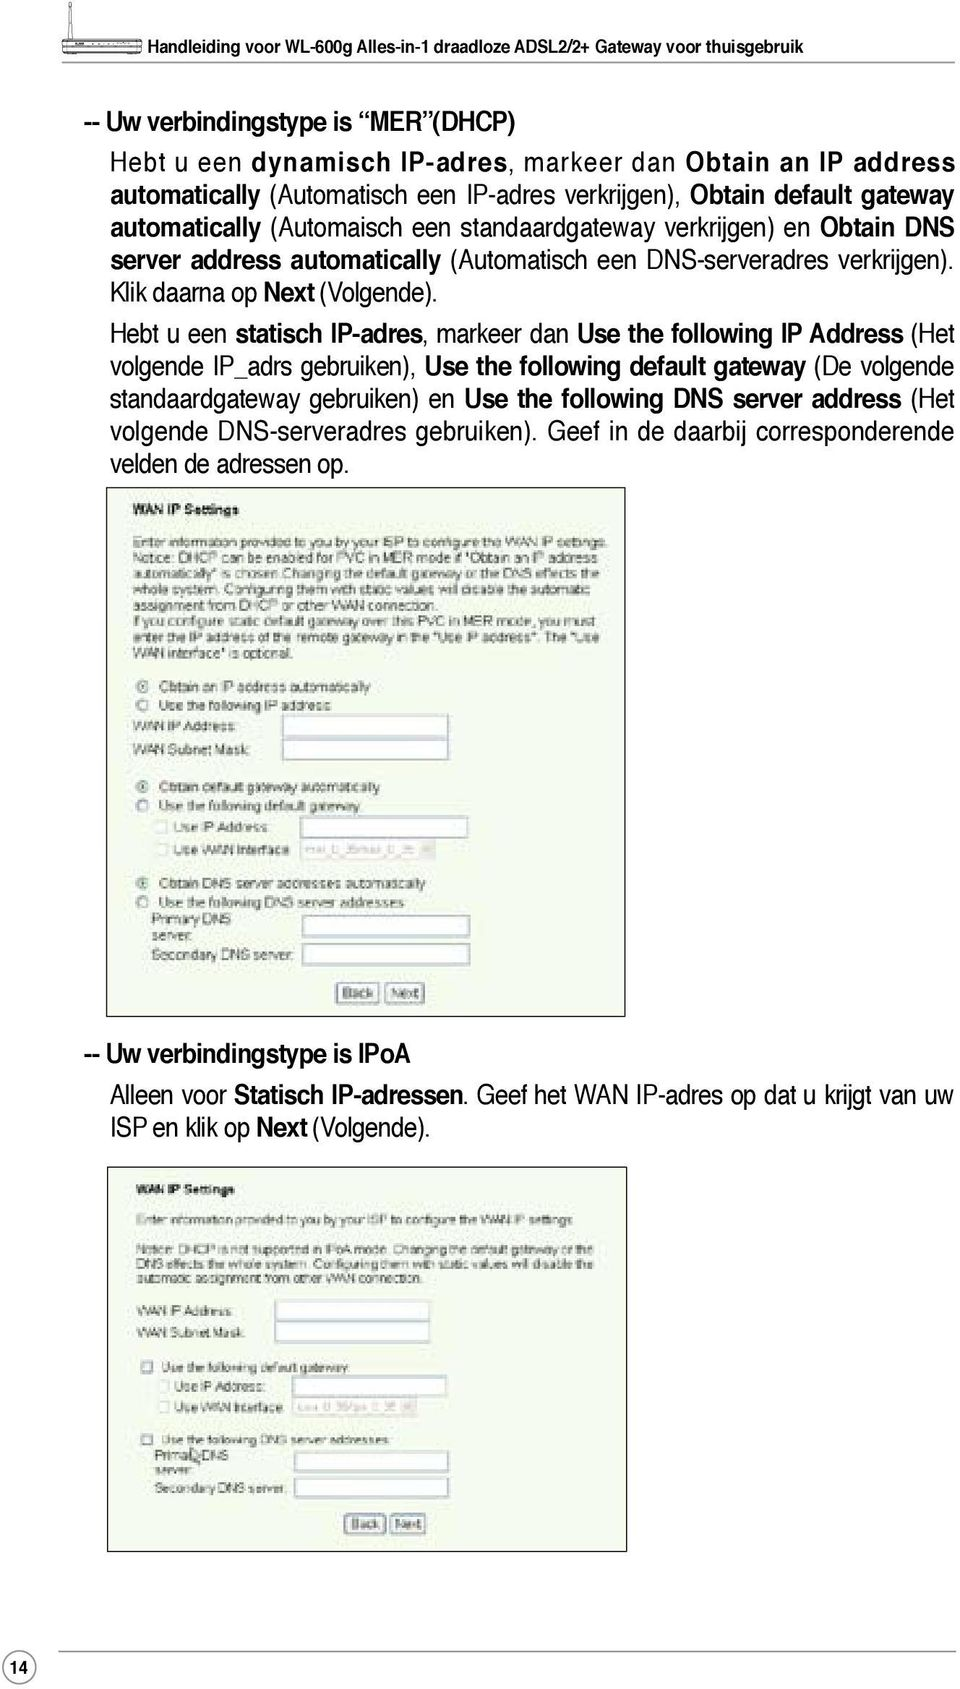 Hebt u een statisch IP-adres, markeer dan Use the following IP Address (Het volgende IP_adrs gebruiken), Use the following default gateway (De volgende standaardgateway gebruiken) en Use the